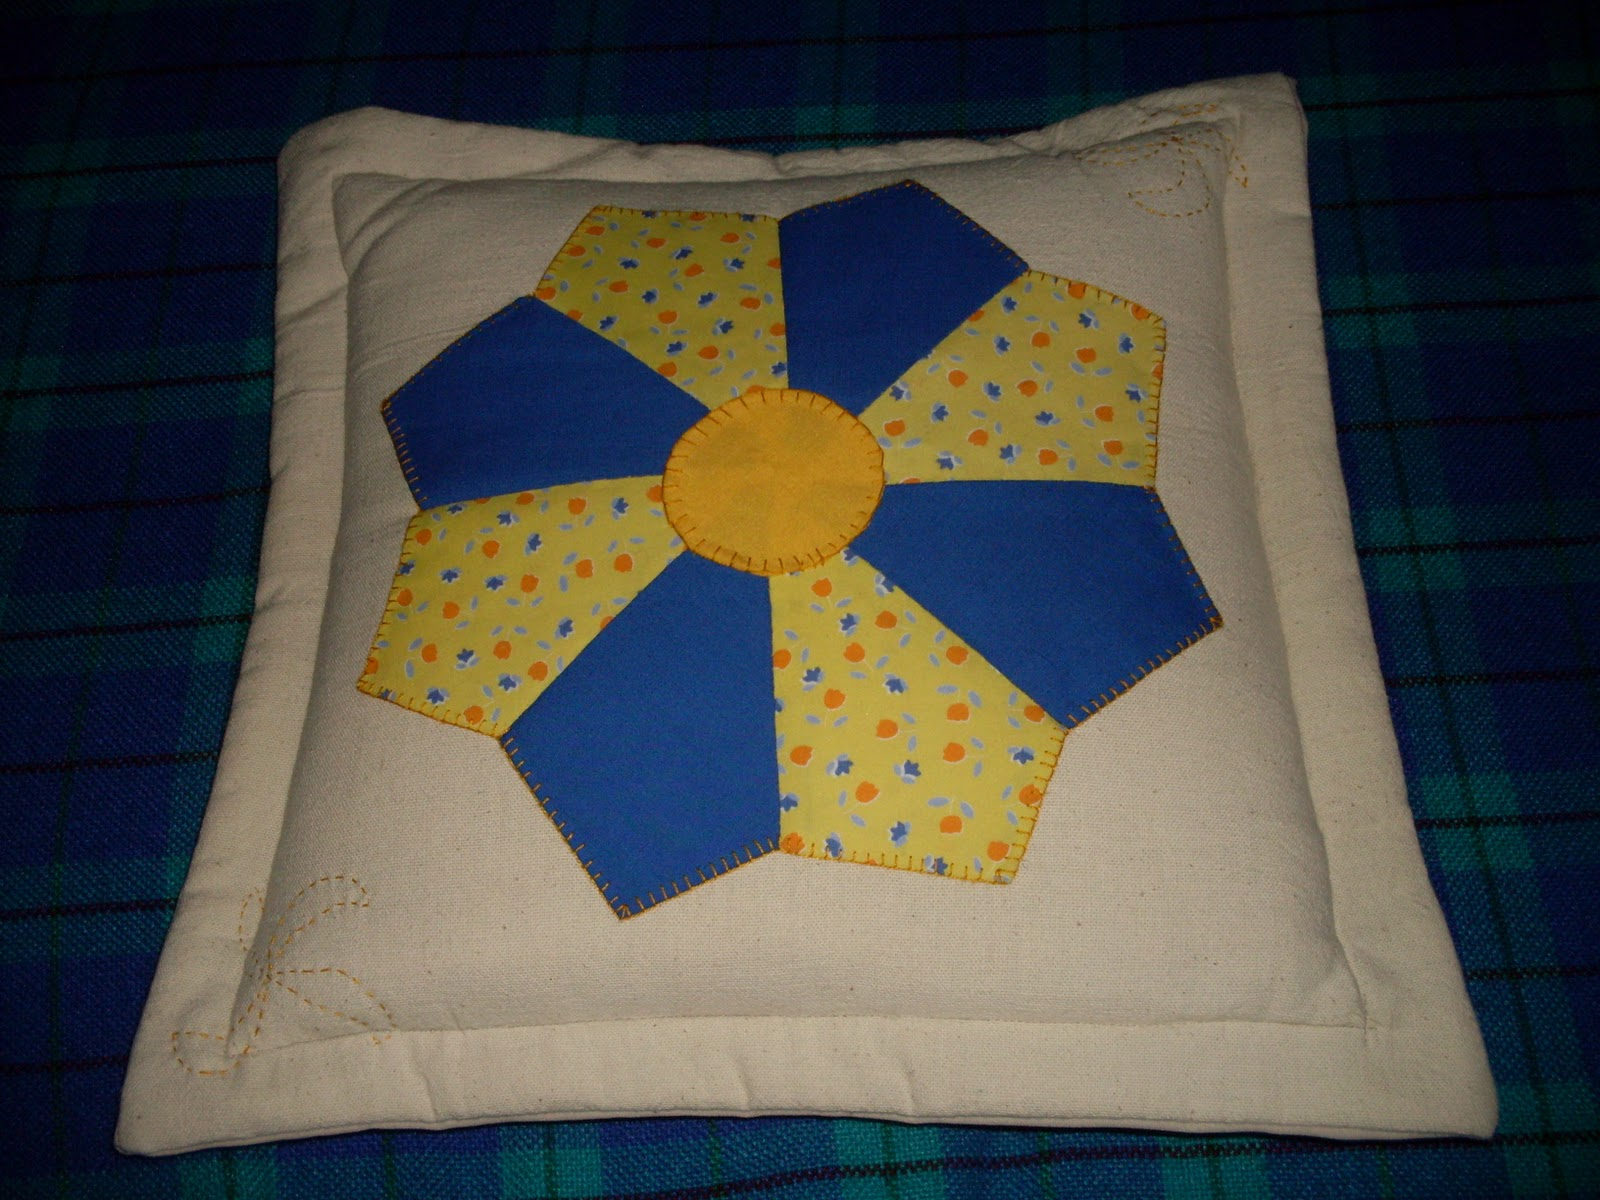 Cojines Patchwork Taller Creativo Manualidades San Jose Cojines En Patchwork